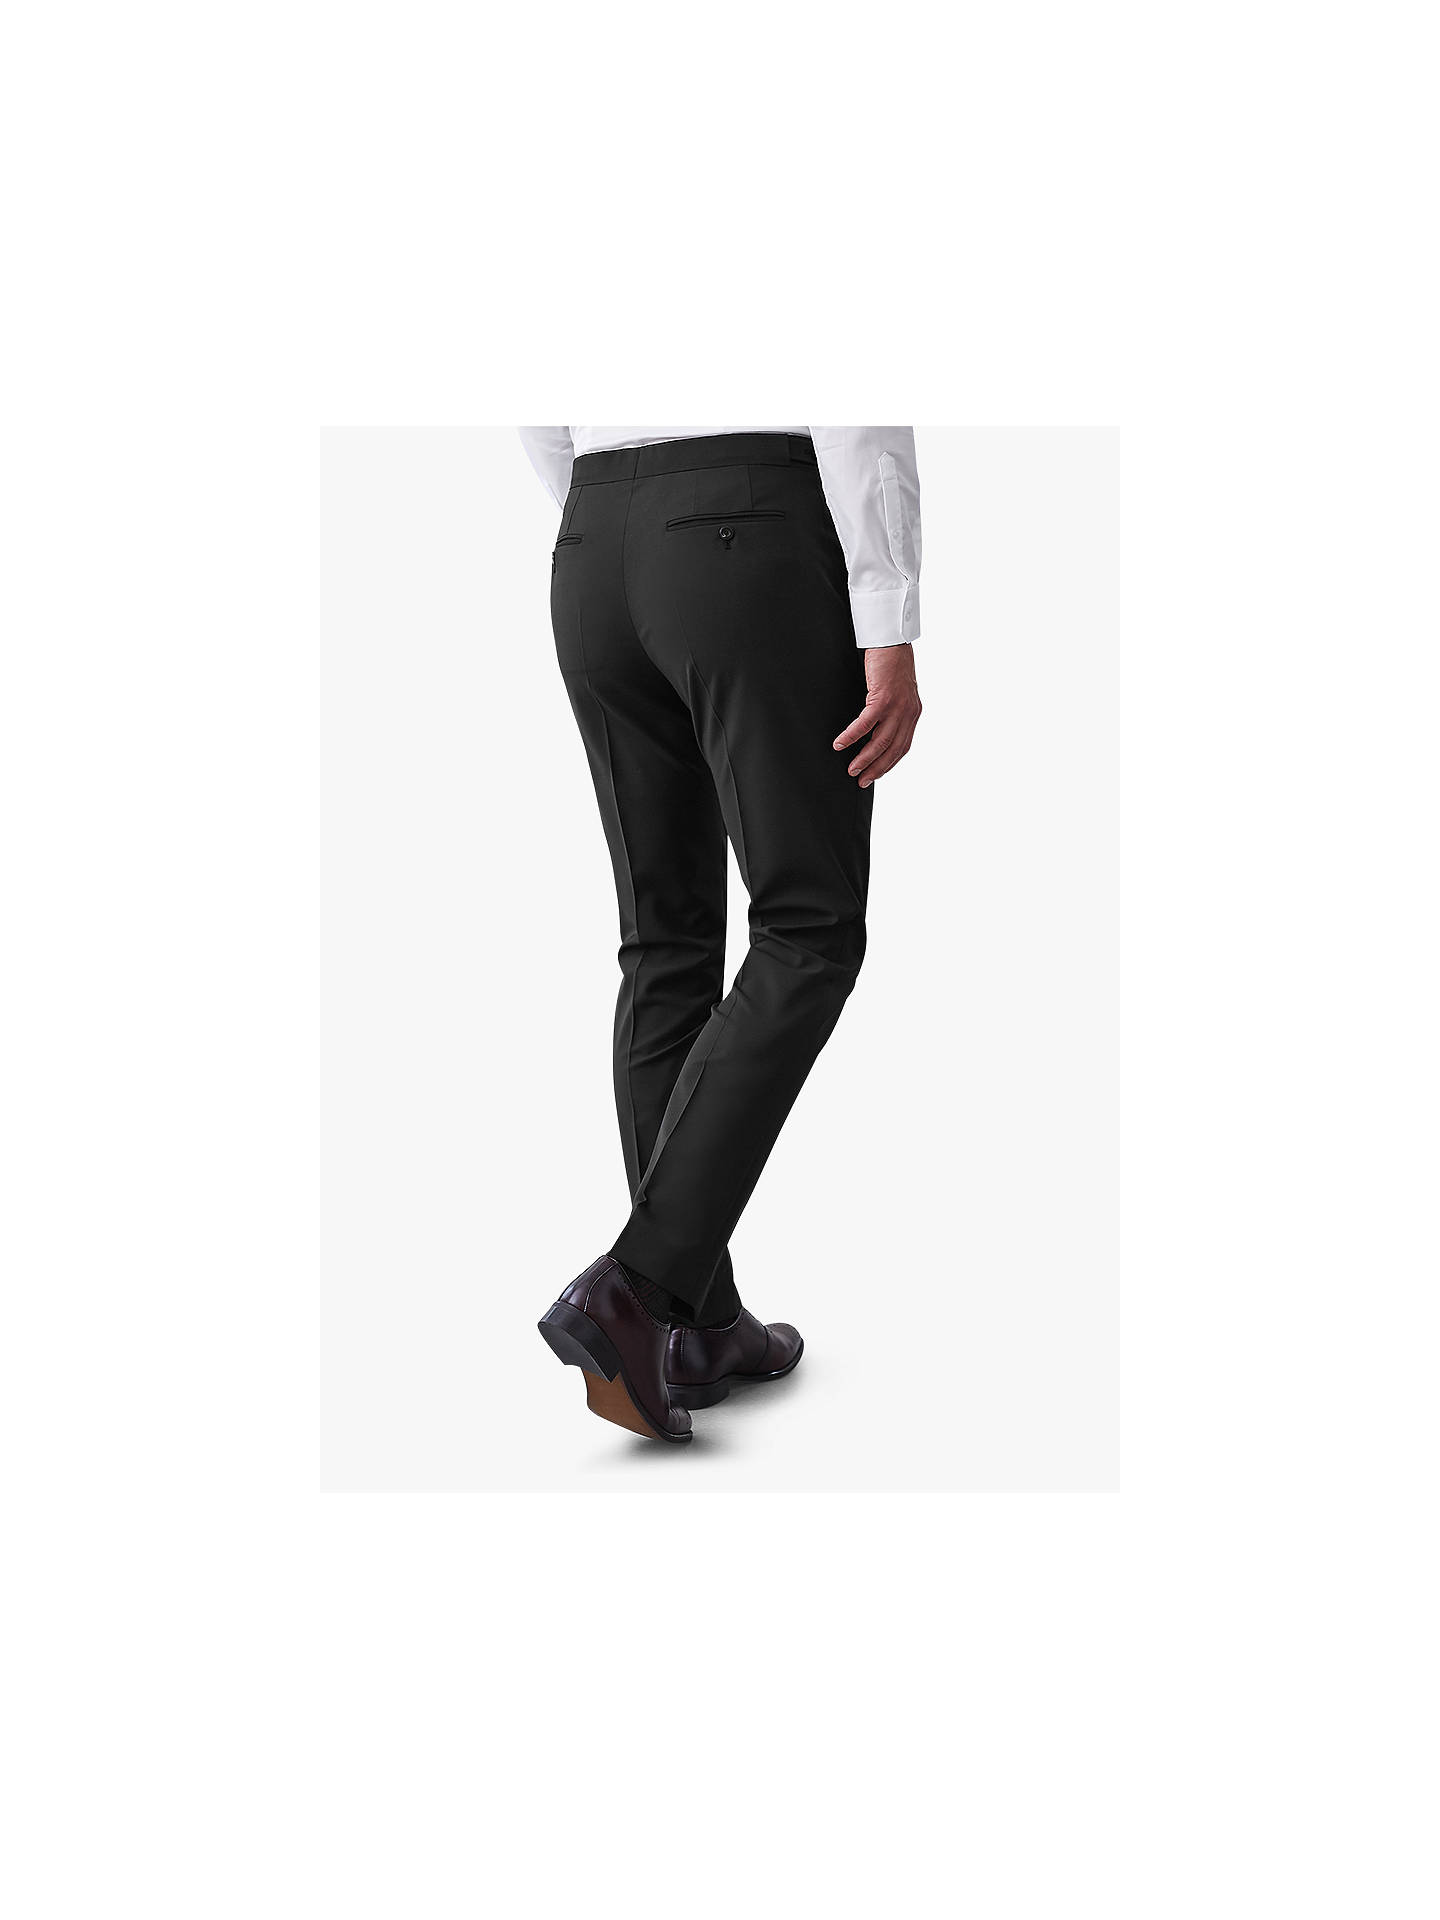 BuyReiss Belief Modern Fit Travel Suit Trousers, Black, 30R Online at johnlewis.com